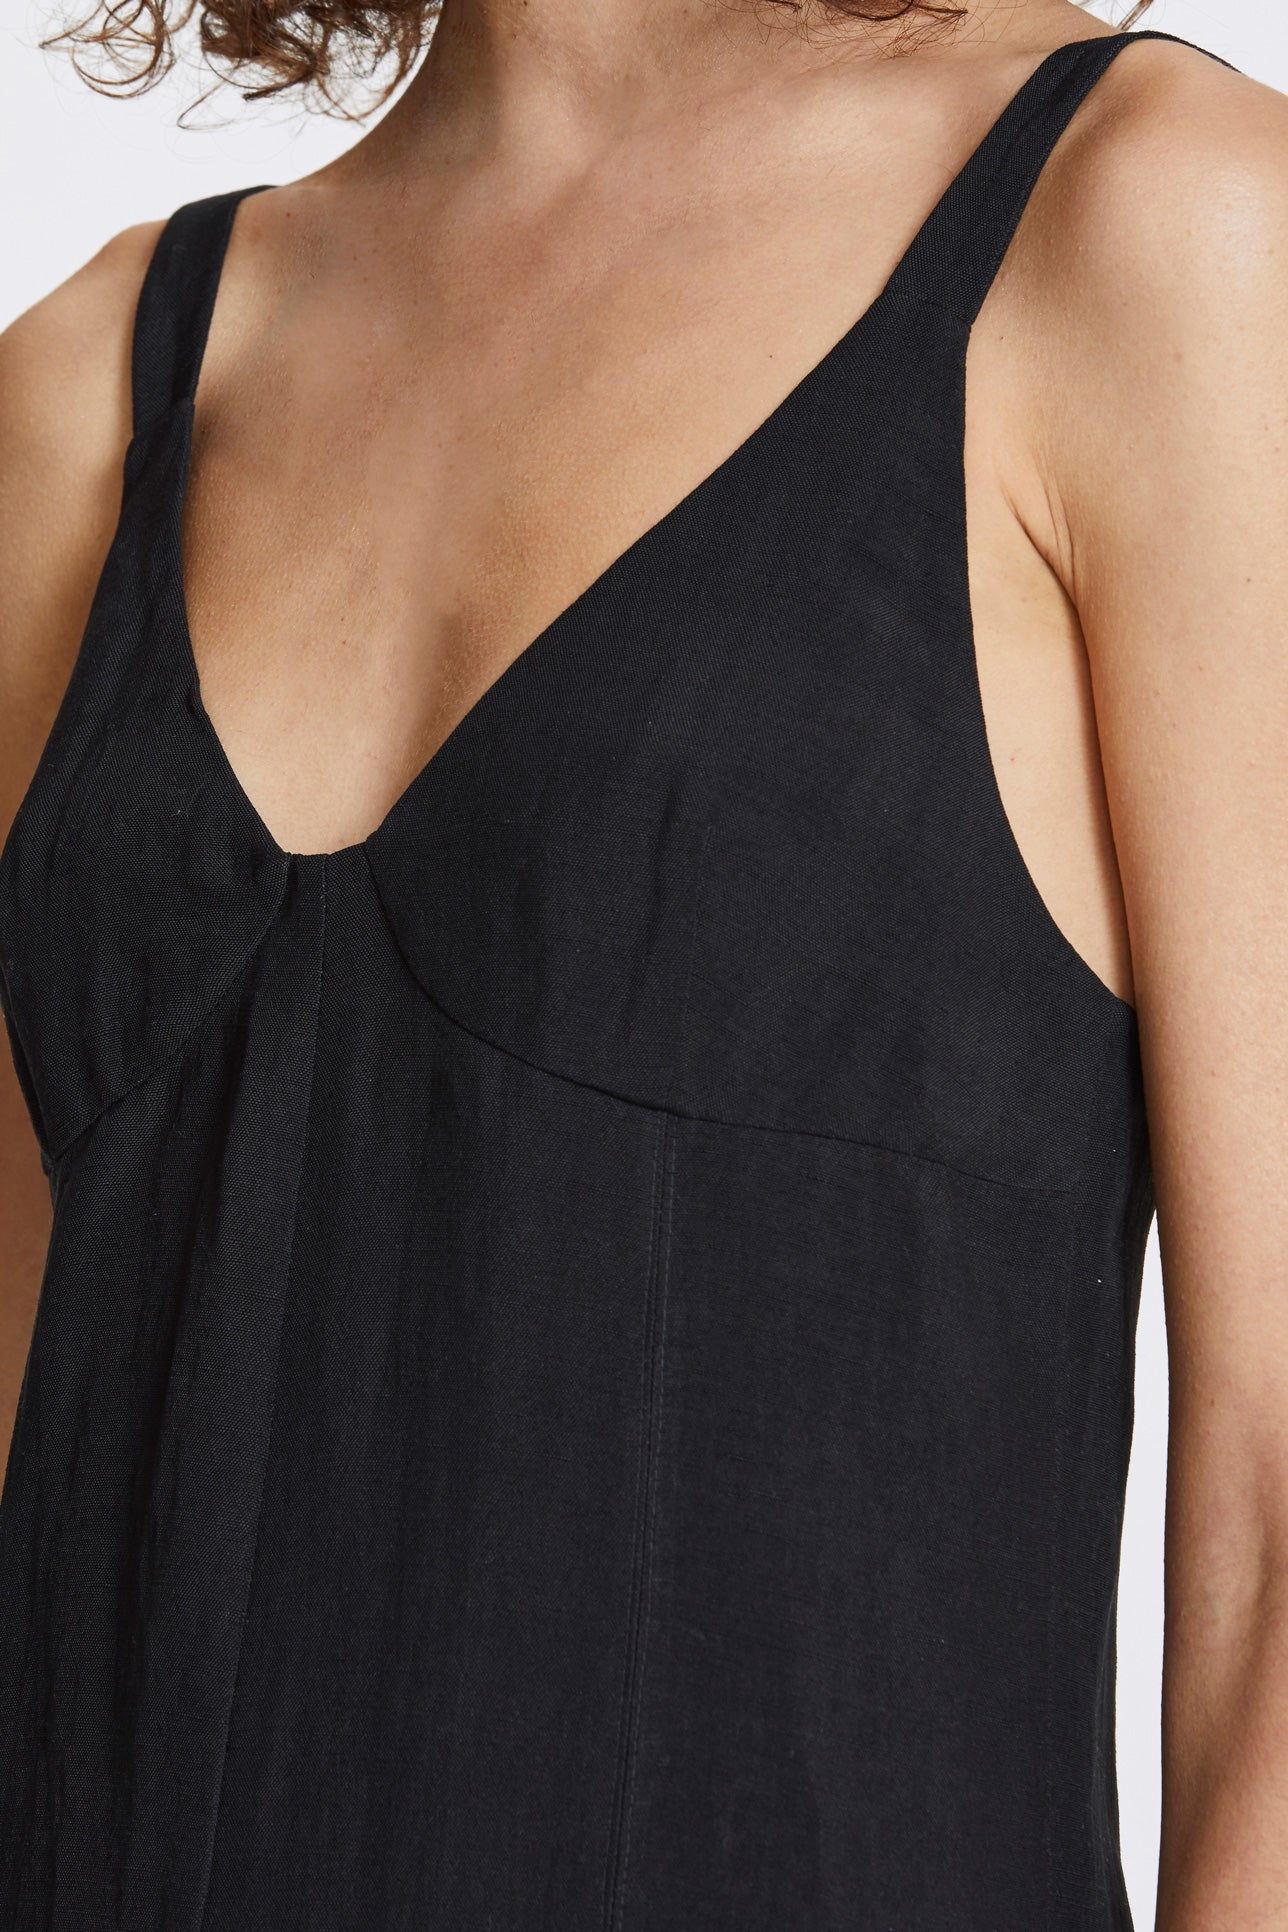 Double vent slip dress - Linen blend - Black - Resortwear dress - Her Line